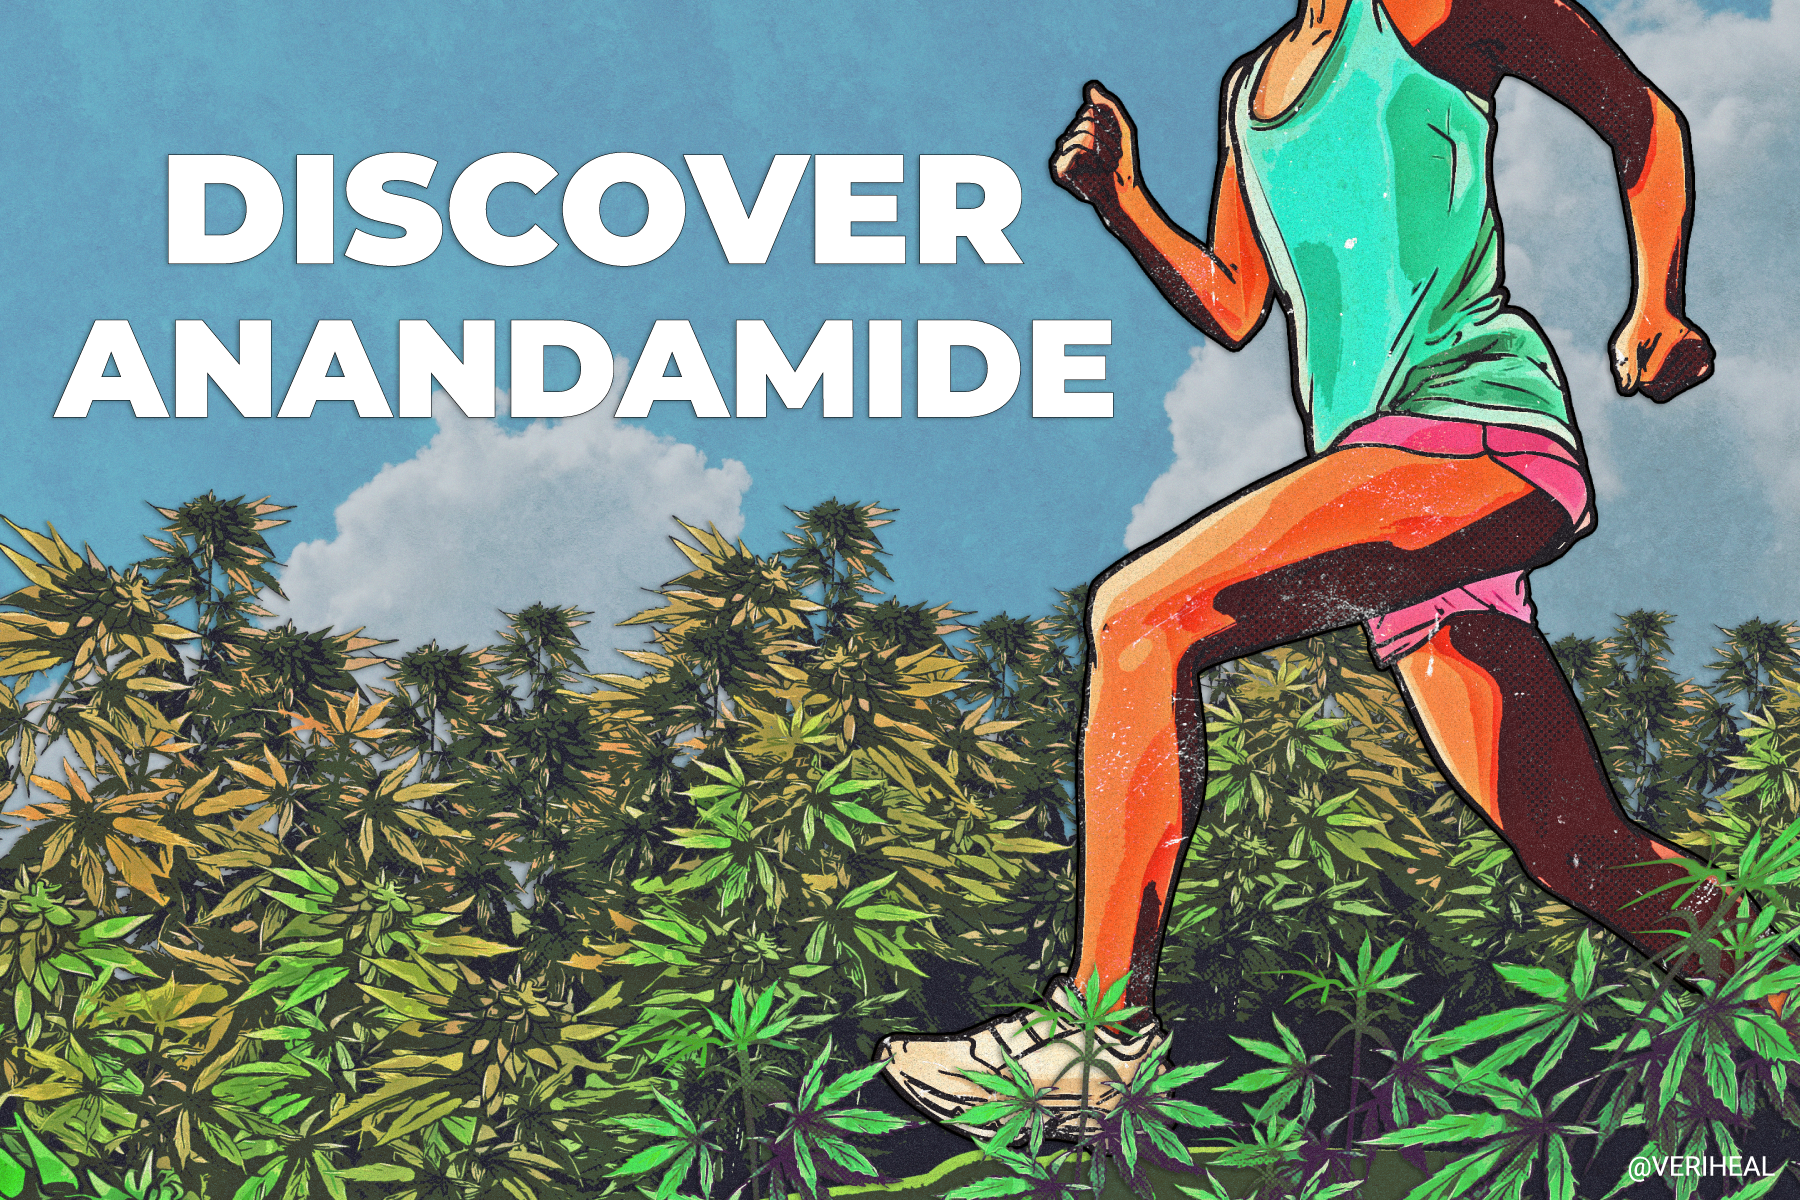 What Is Anandamide?